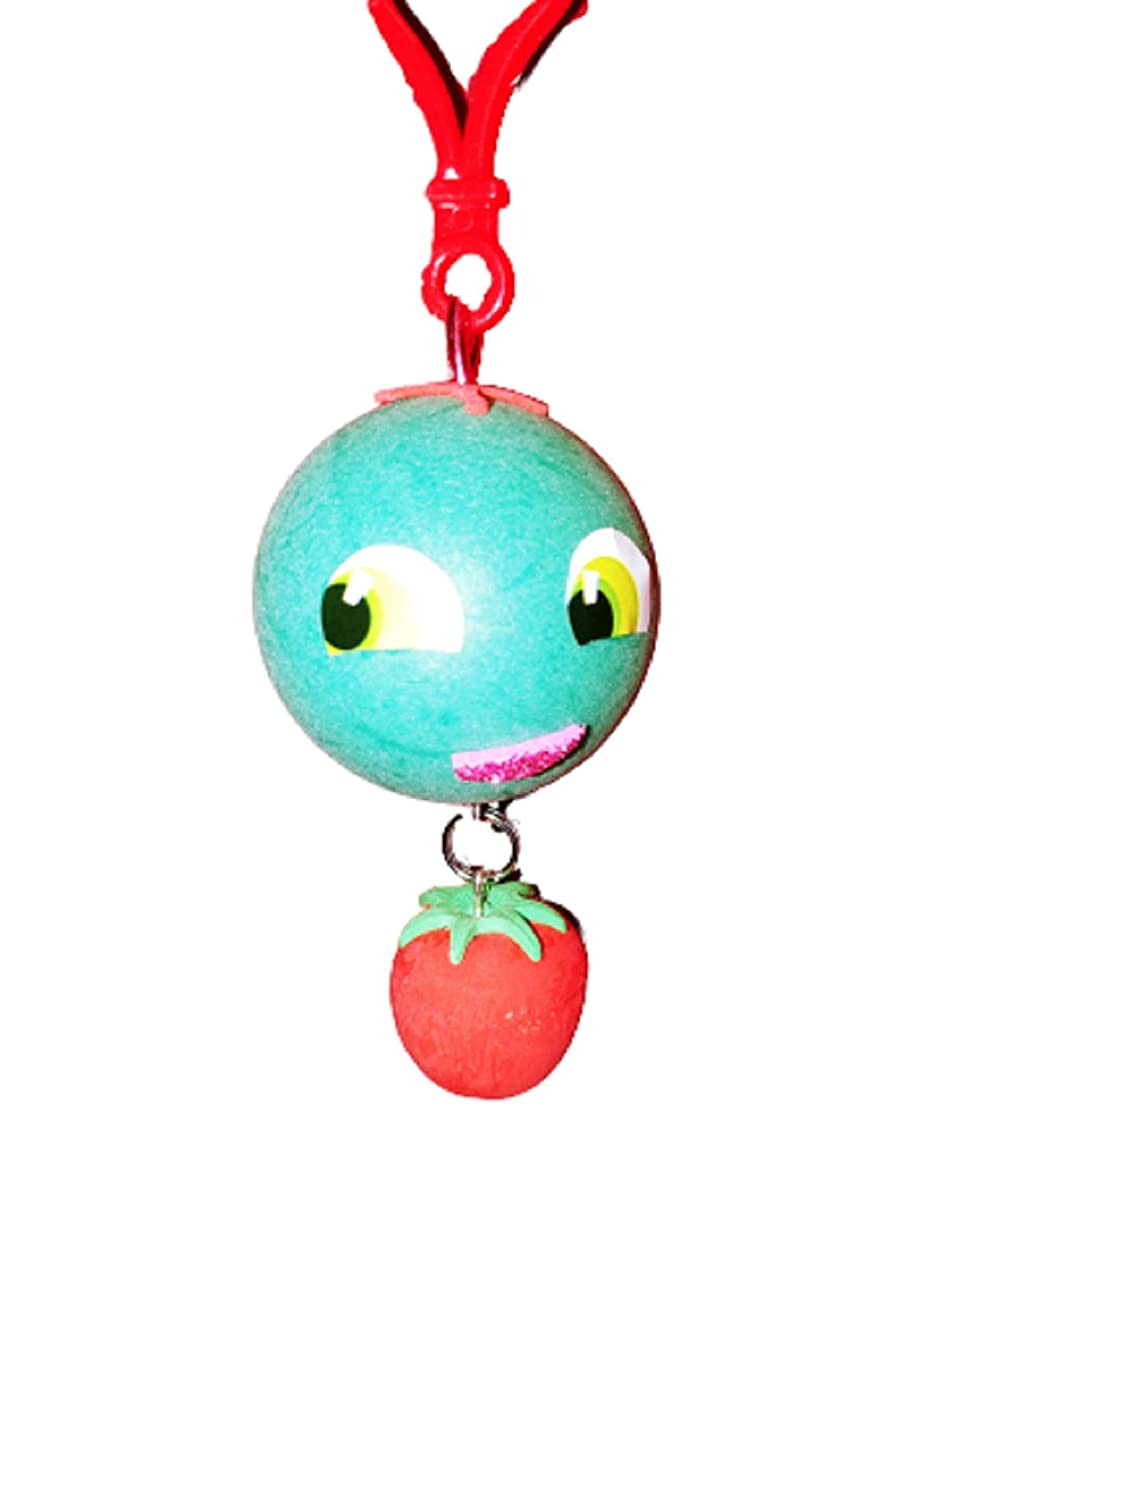 Backpack Max 79% OFF Keychain Unicvatar Eraser Tomato Super beauty product restock quality top with